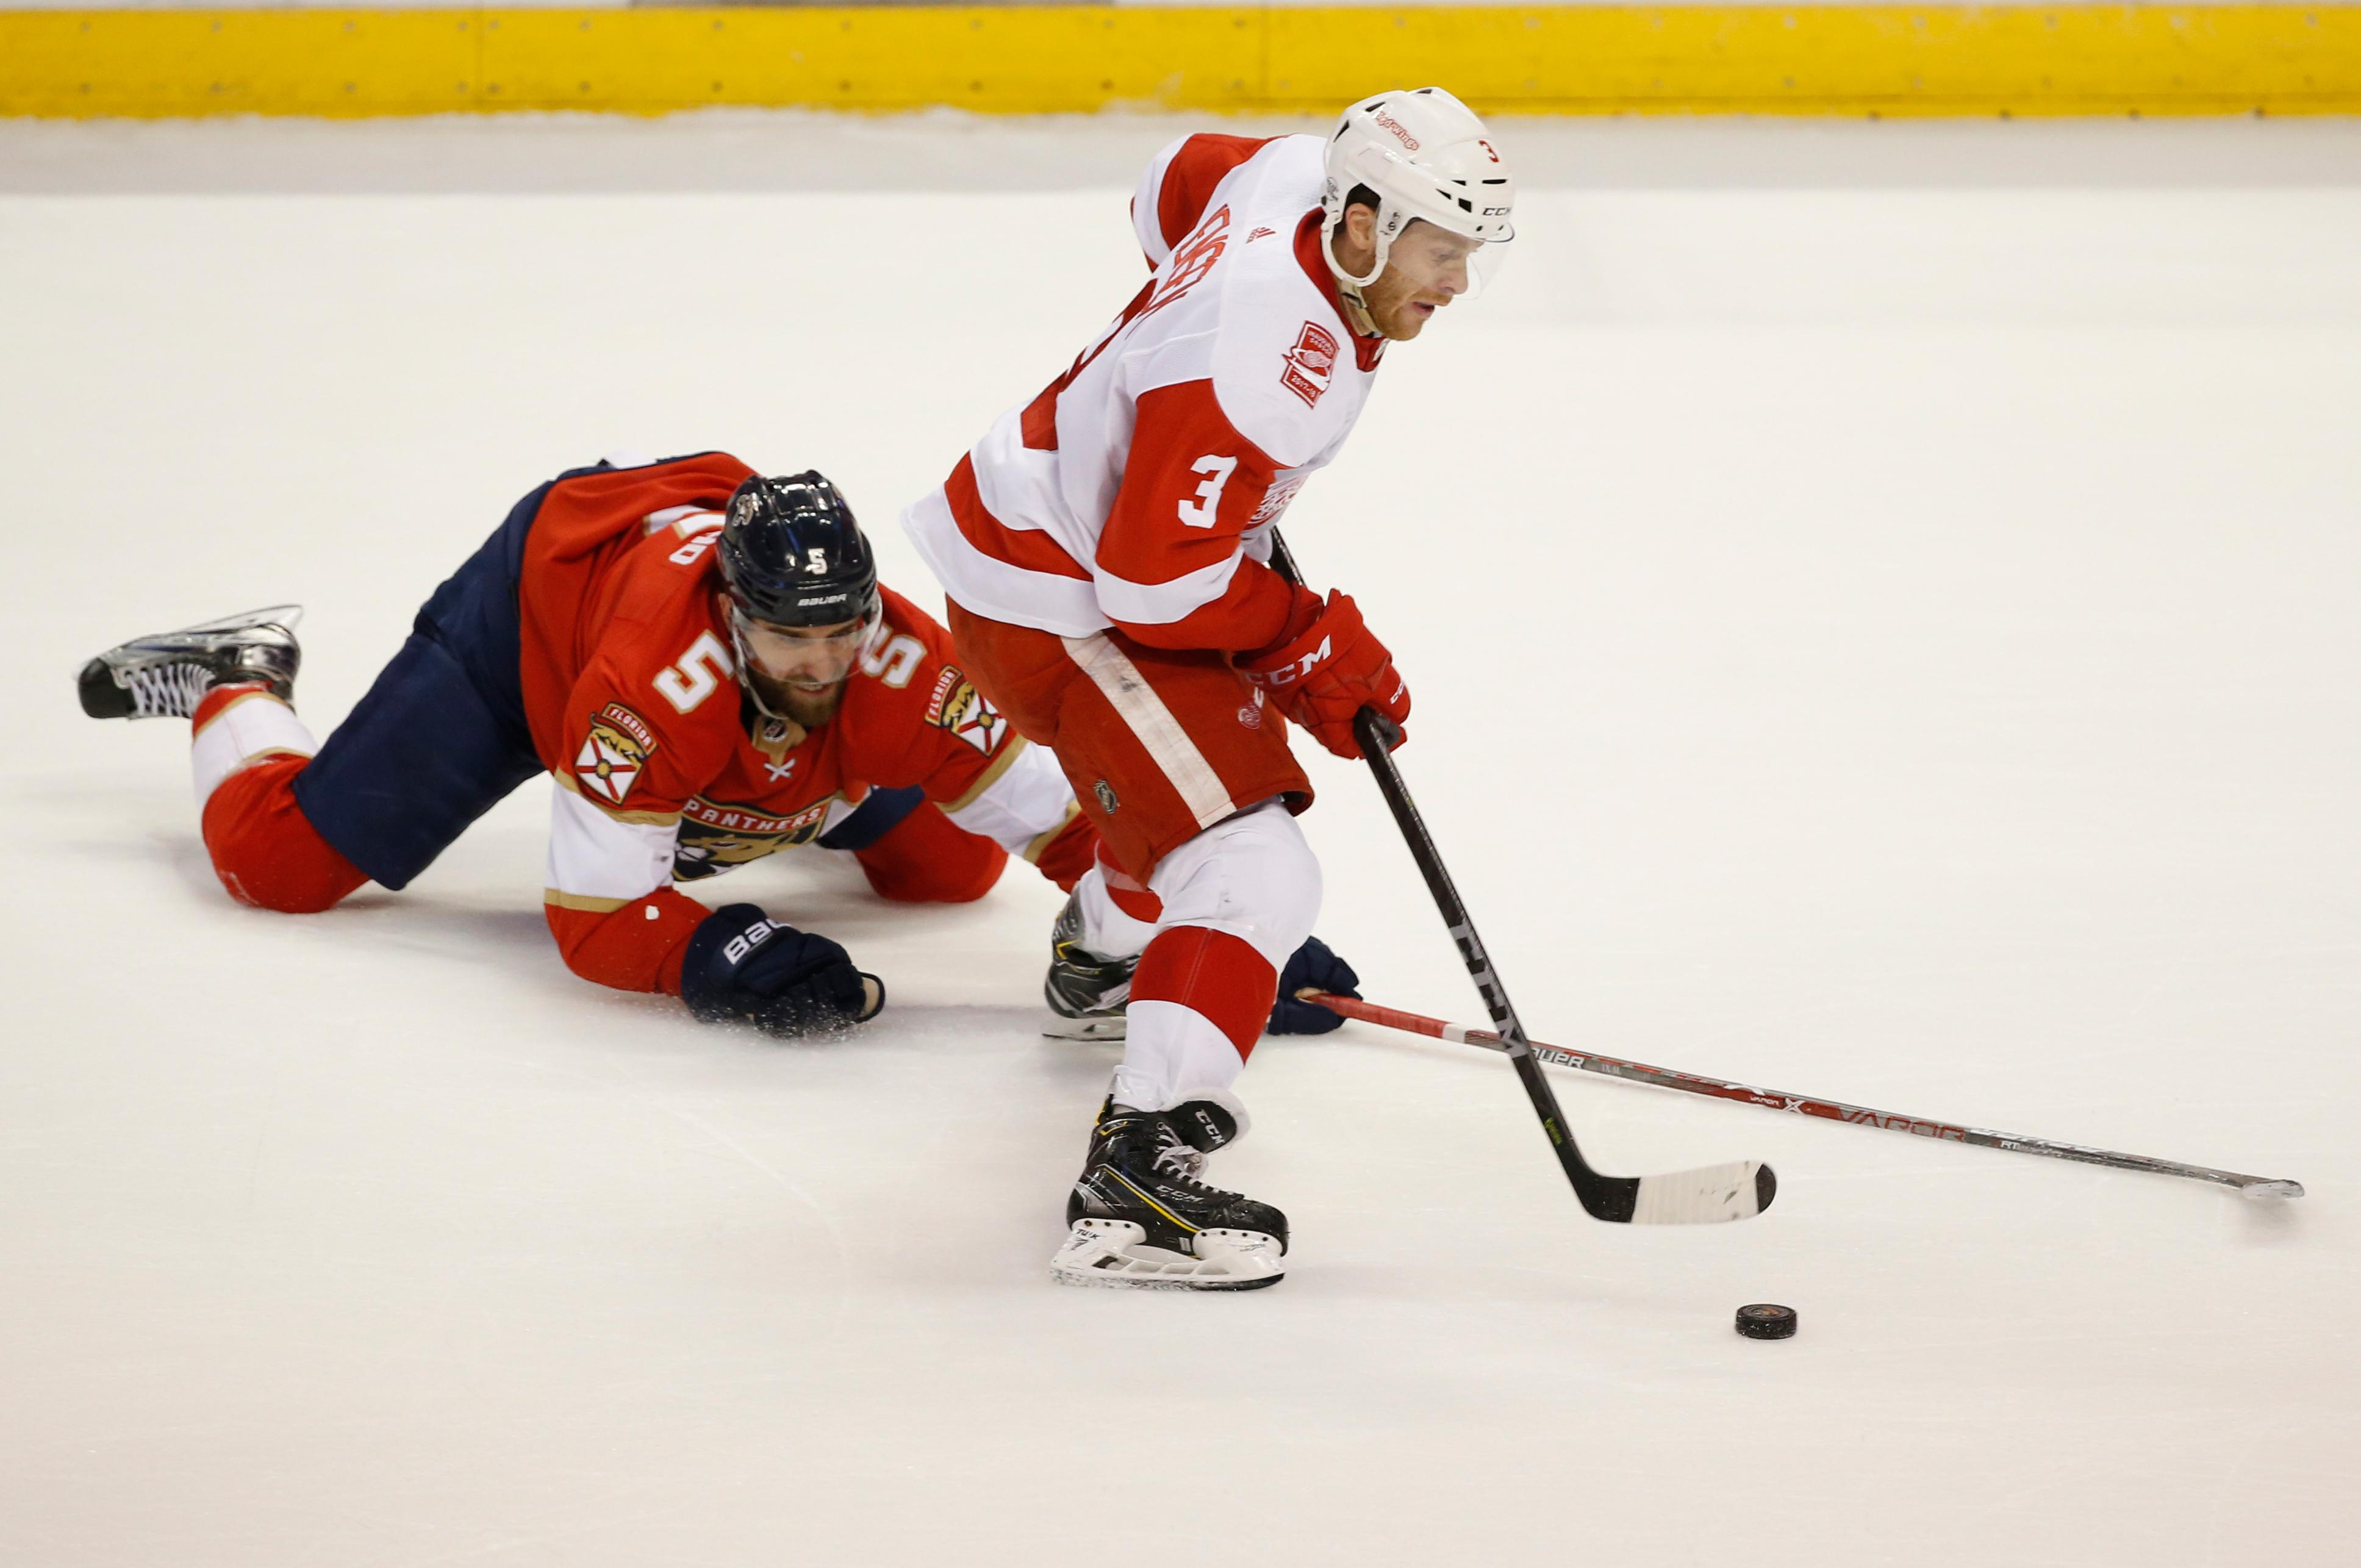 Detroit Red Wings defenseman Nick Jensen (3) battles for the puck with Florida Panthers defenseman Aaron Ekblad (5) during the first period of an NHL hockey game, Saturday, Feb. 3, 2018 in Sunrise, Fla. (AP Photo/Wilfredo Lee)